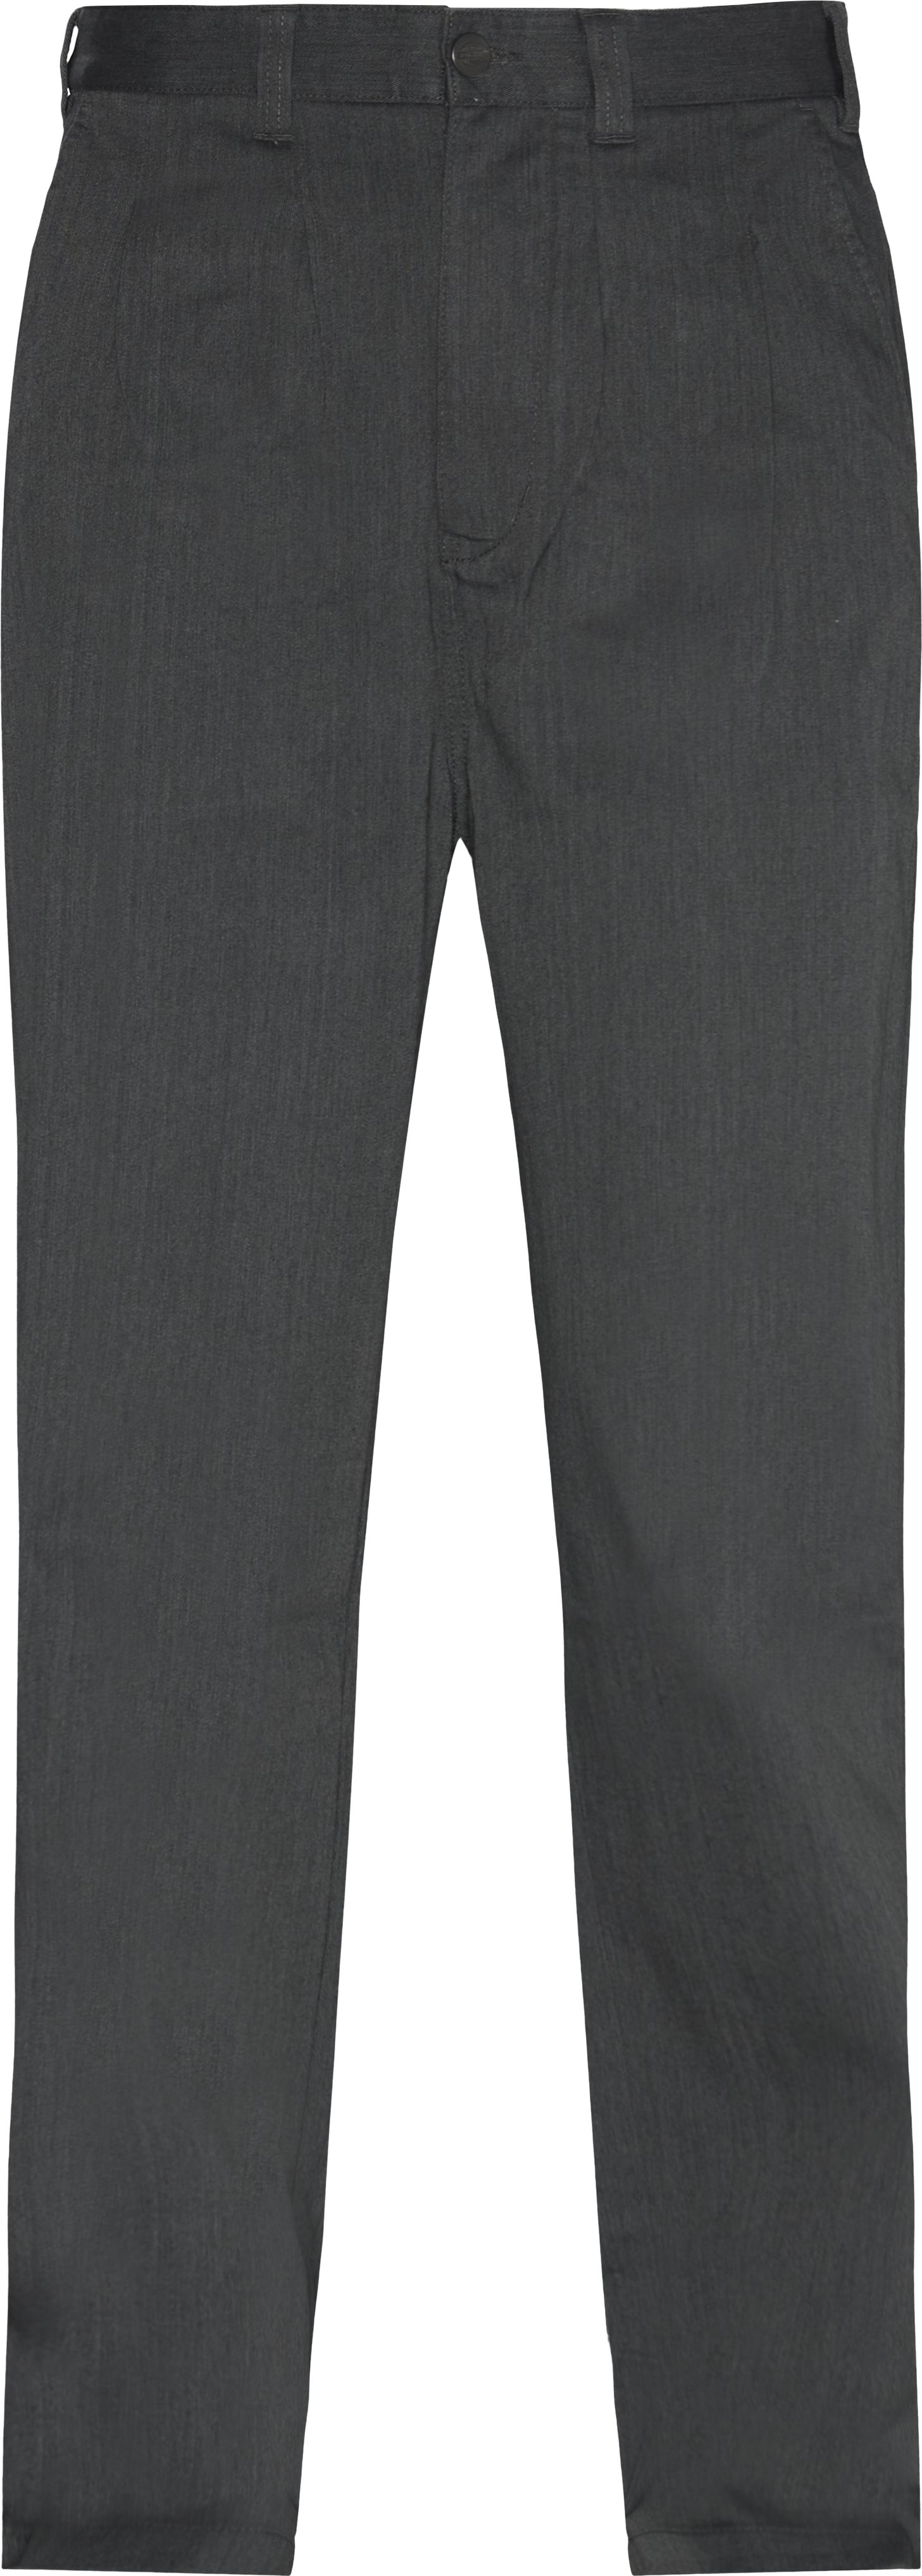 Clarkston Pant - Bukser - Loose fit - Grå